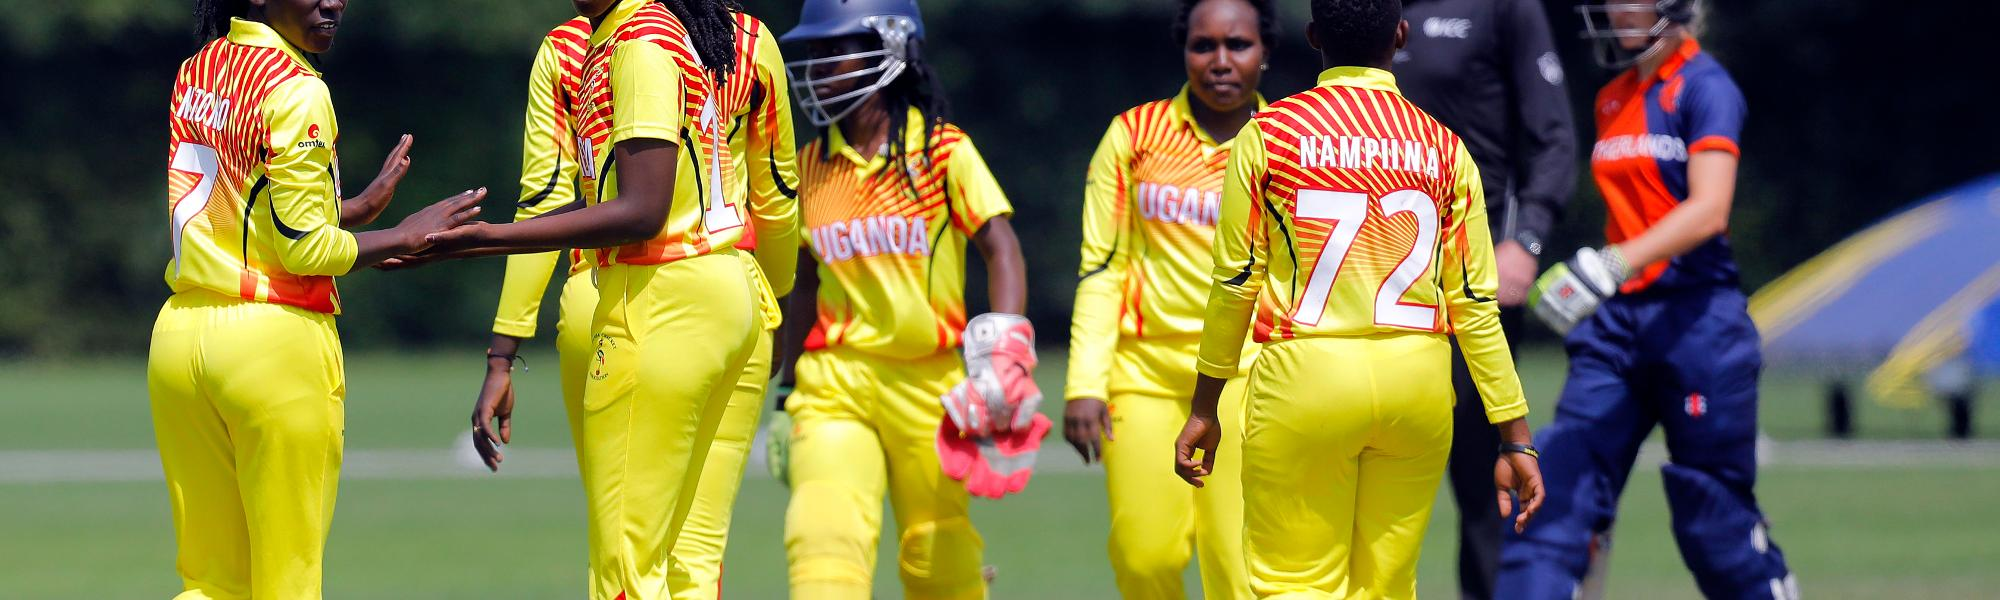 Ugandan players celebrate the dismissal of Netherland Batsman Kallis, 1st Play-off Semi-Final, ICC Women's World Twenty20 Qualifier at Utrecht, Jul 12th 2018.